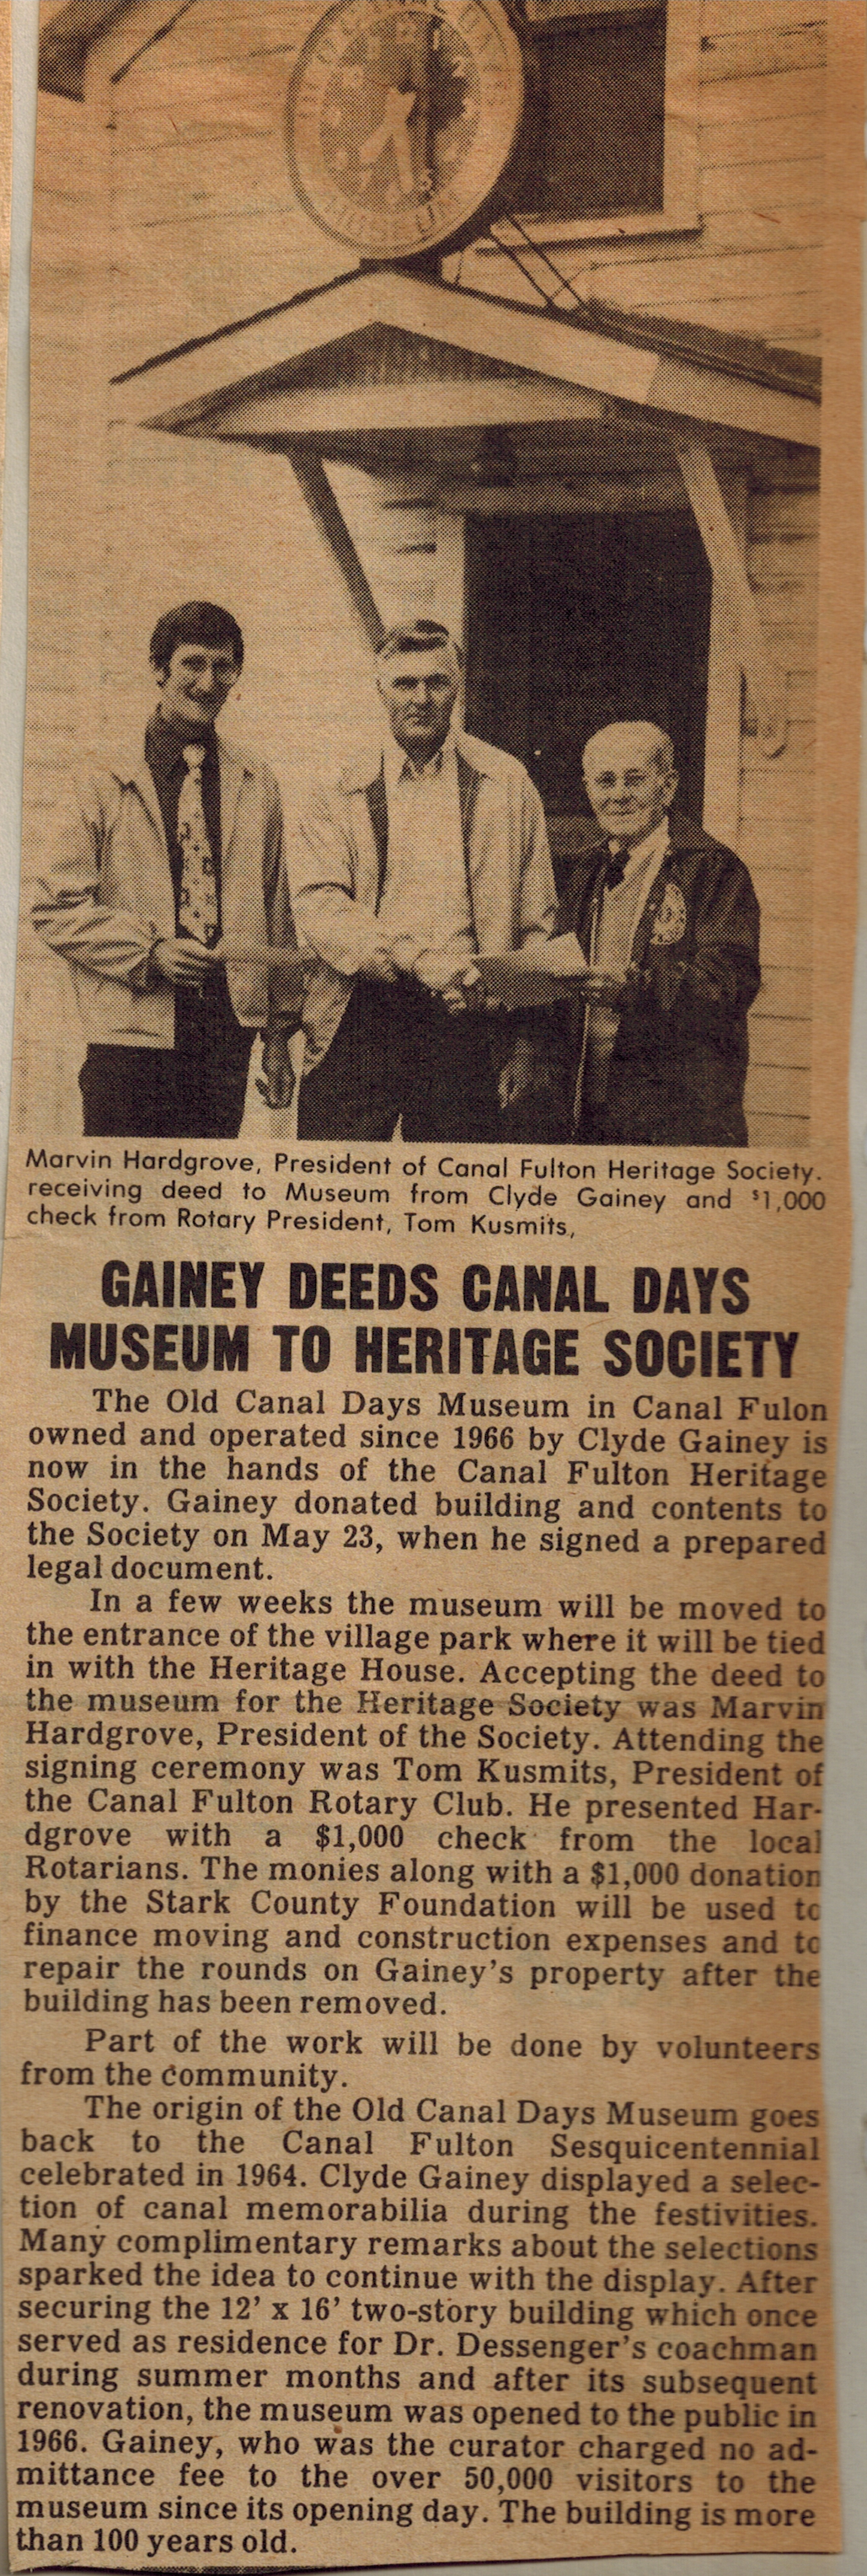 Gainey deeds Museum to CFHS